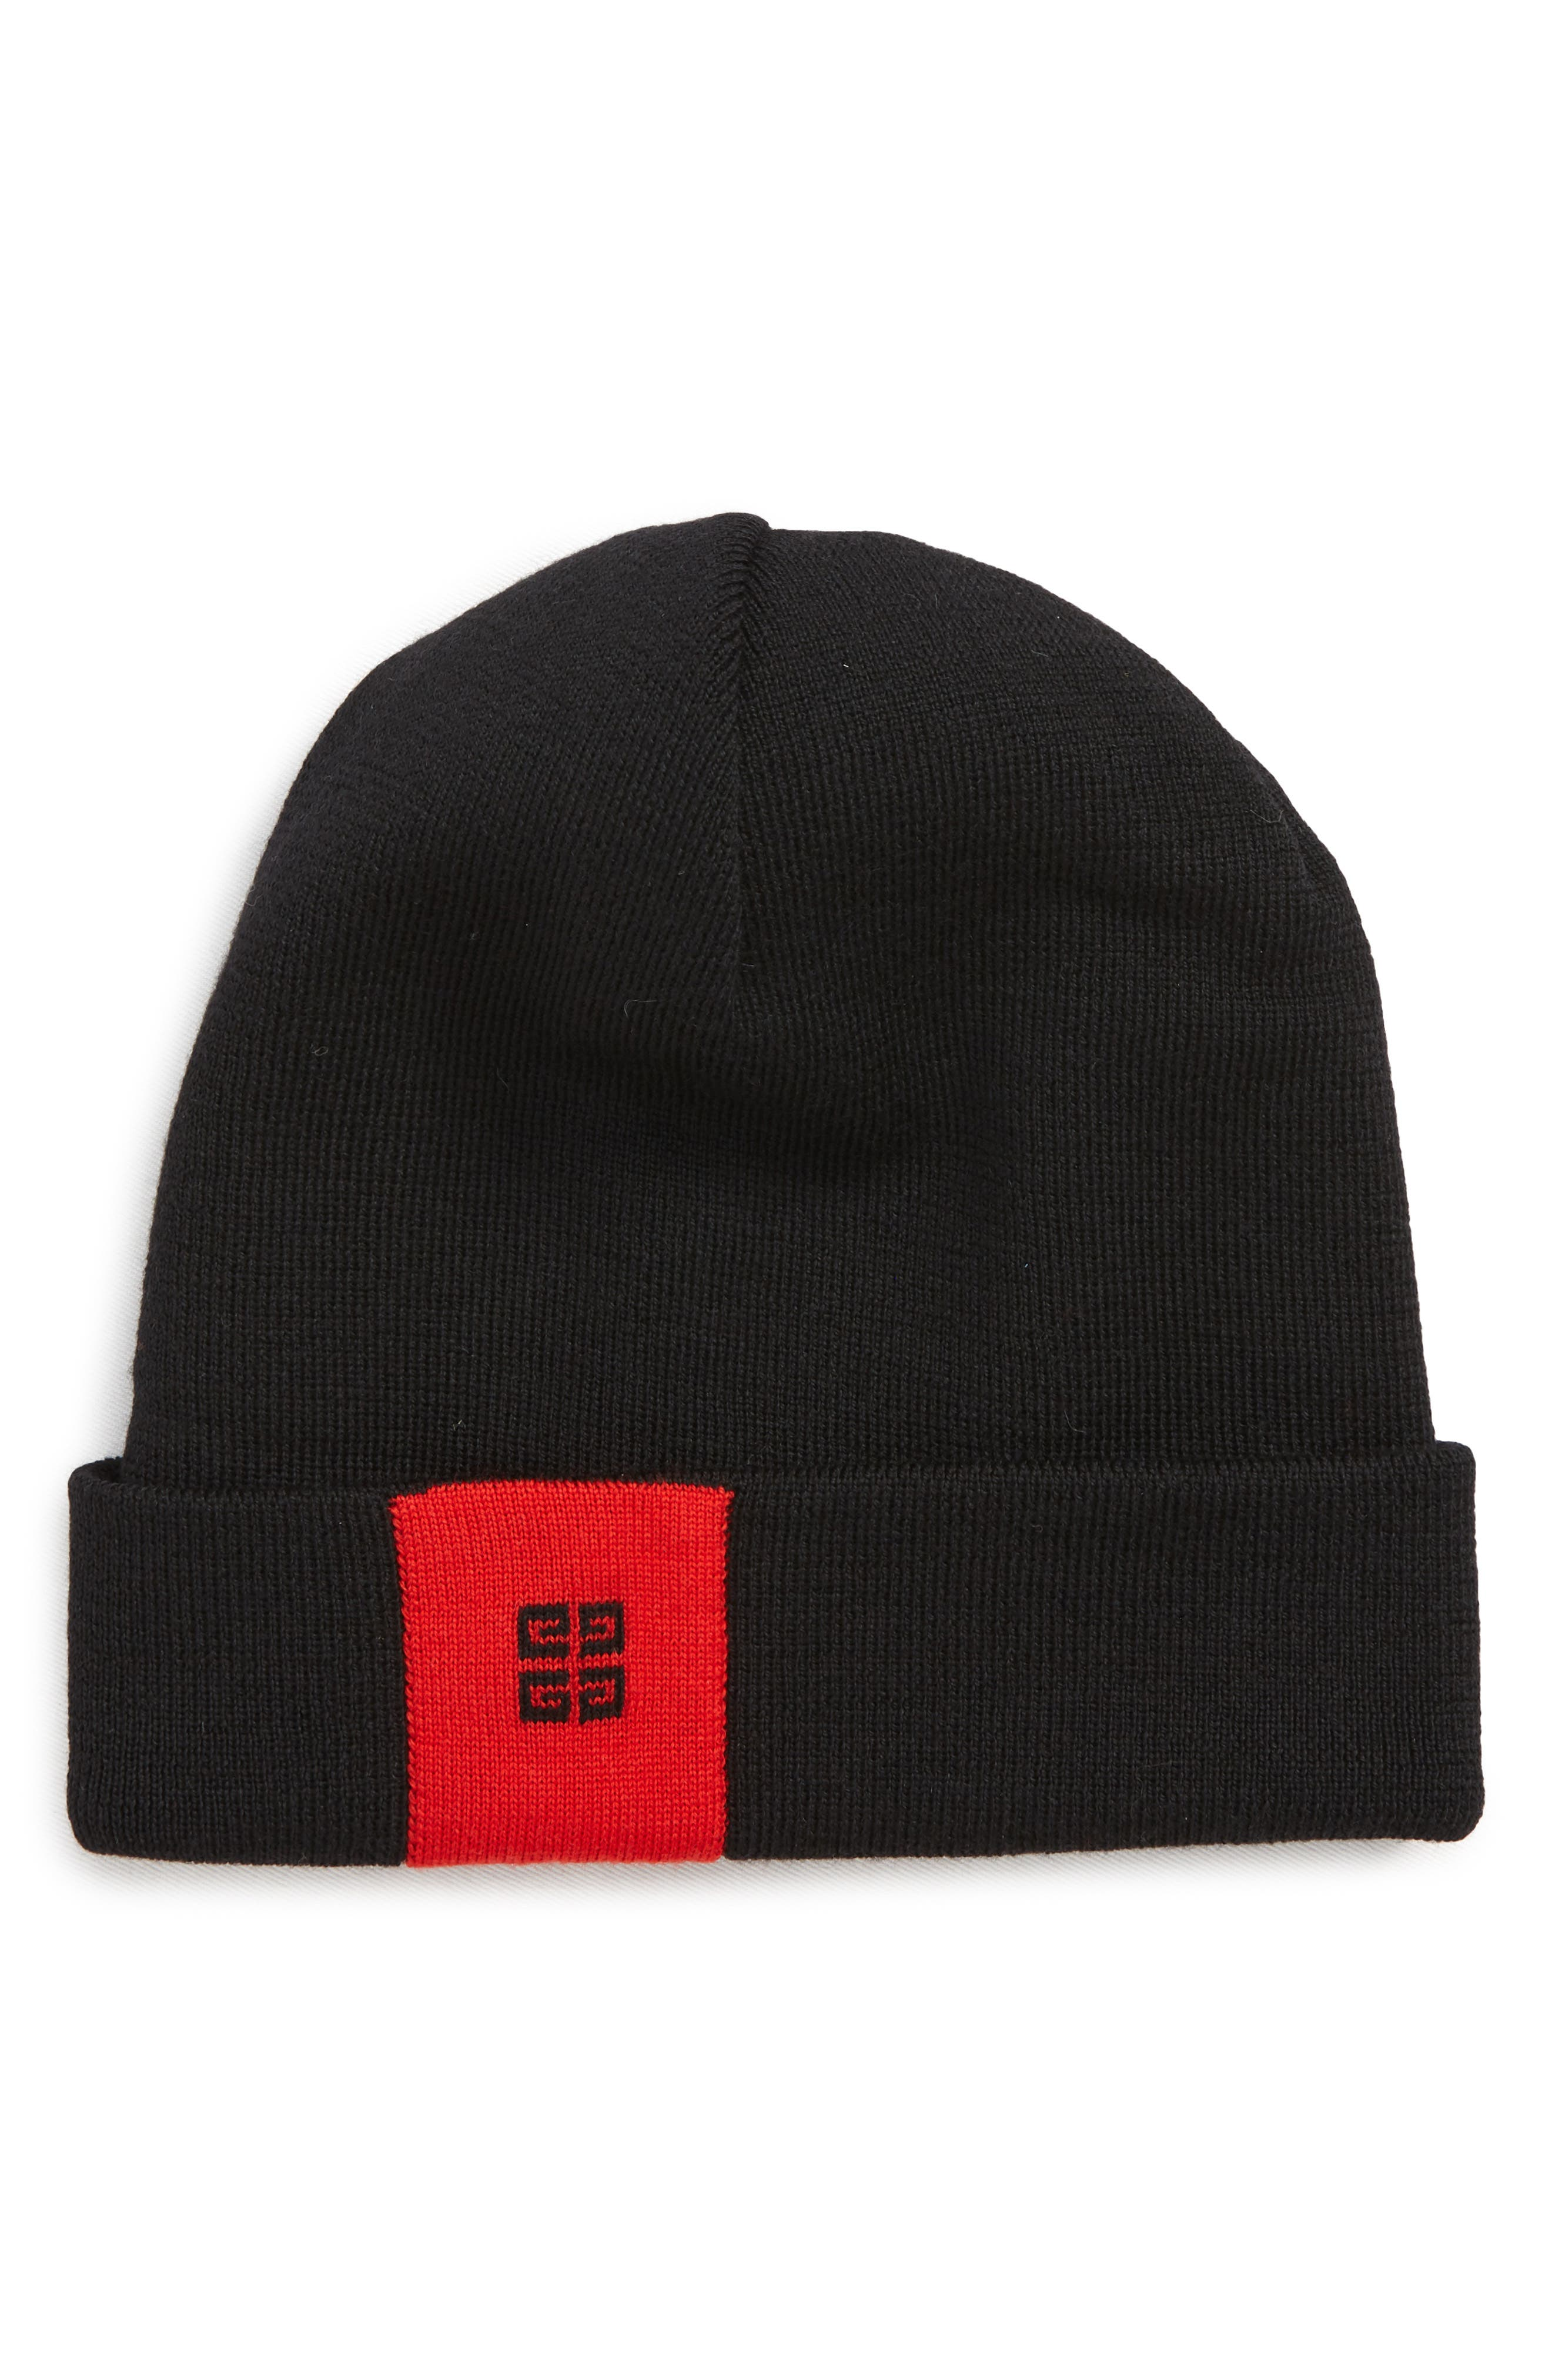 4G Wool Beanie,                         Main,                         color, BLACK/ RED